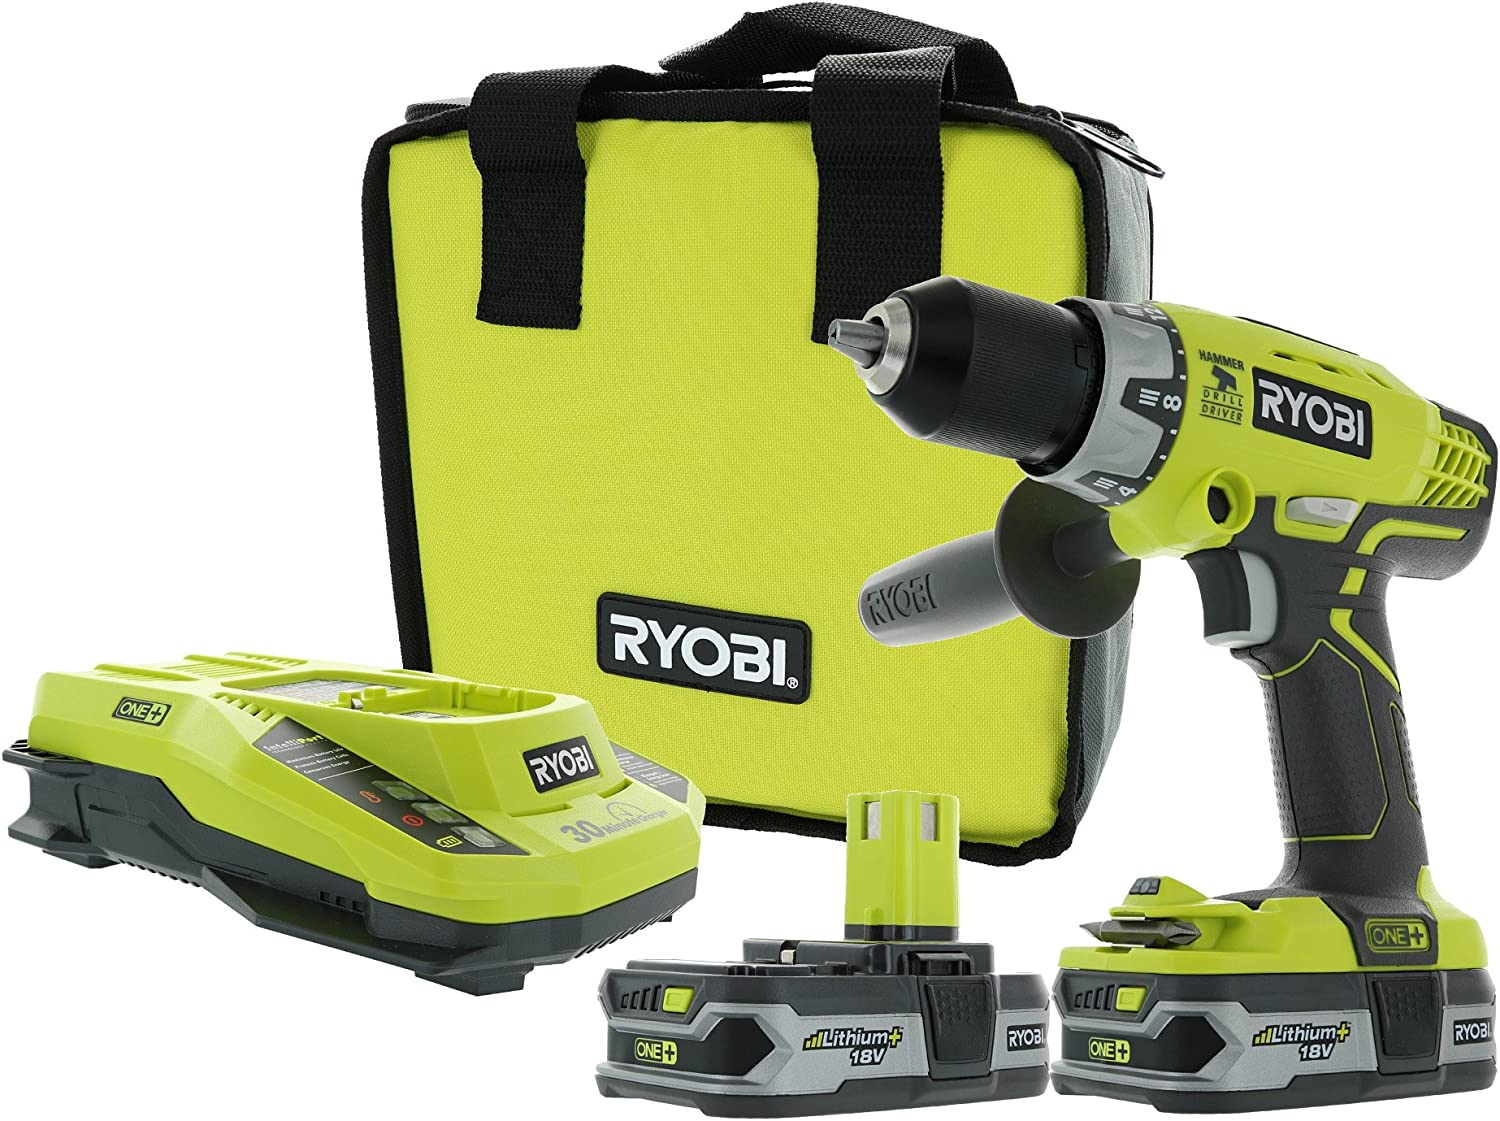 Ryobi P1812 One 18V Lithium Ion Cordless 600 Inch Pound Hammer Drilling Combination Kit 1 x P214 Hammer Drill, 2 x P107 18V Batteries, 1 x P117 Charger, 1 x Tool Bag